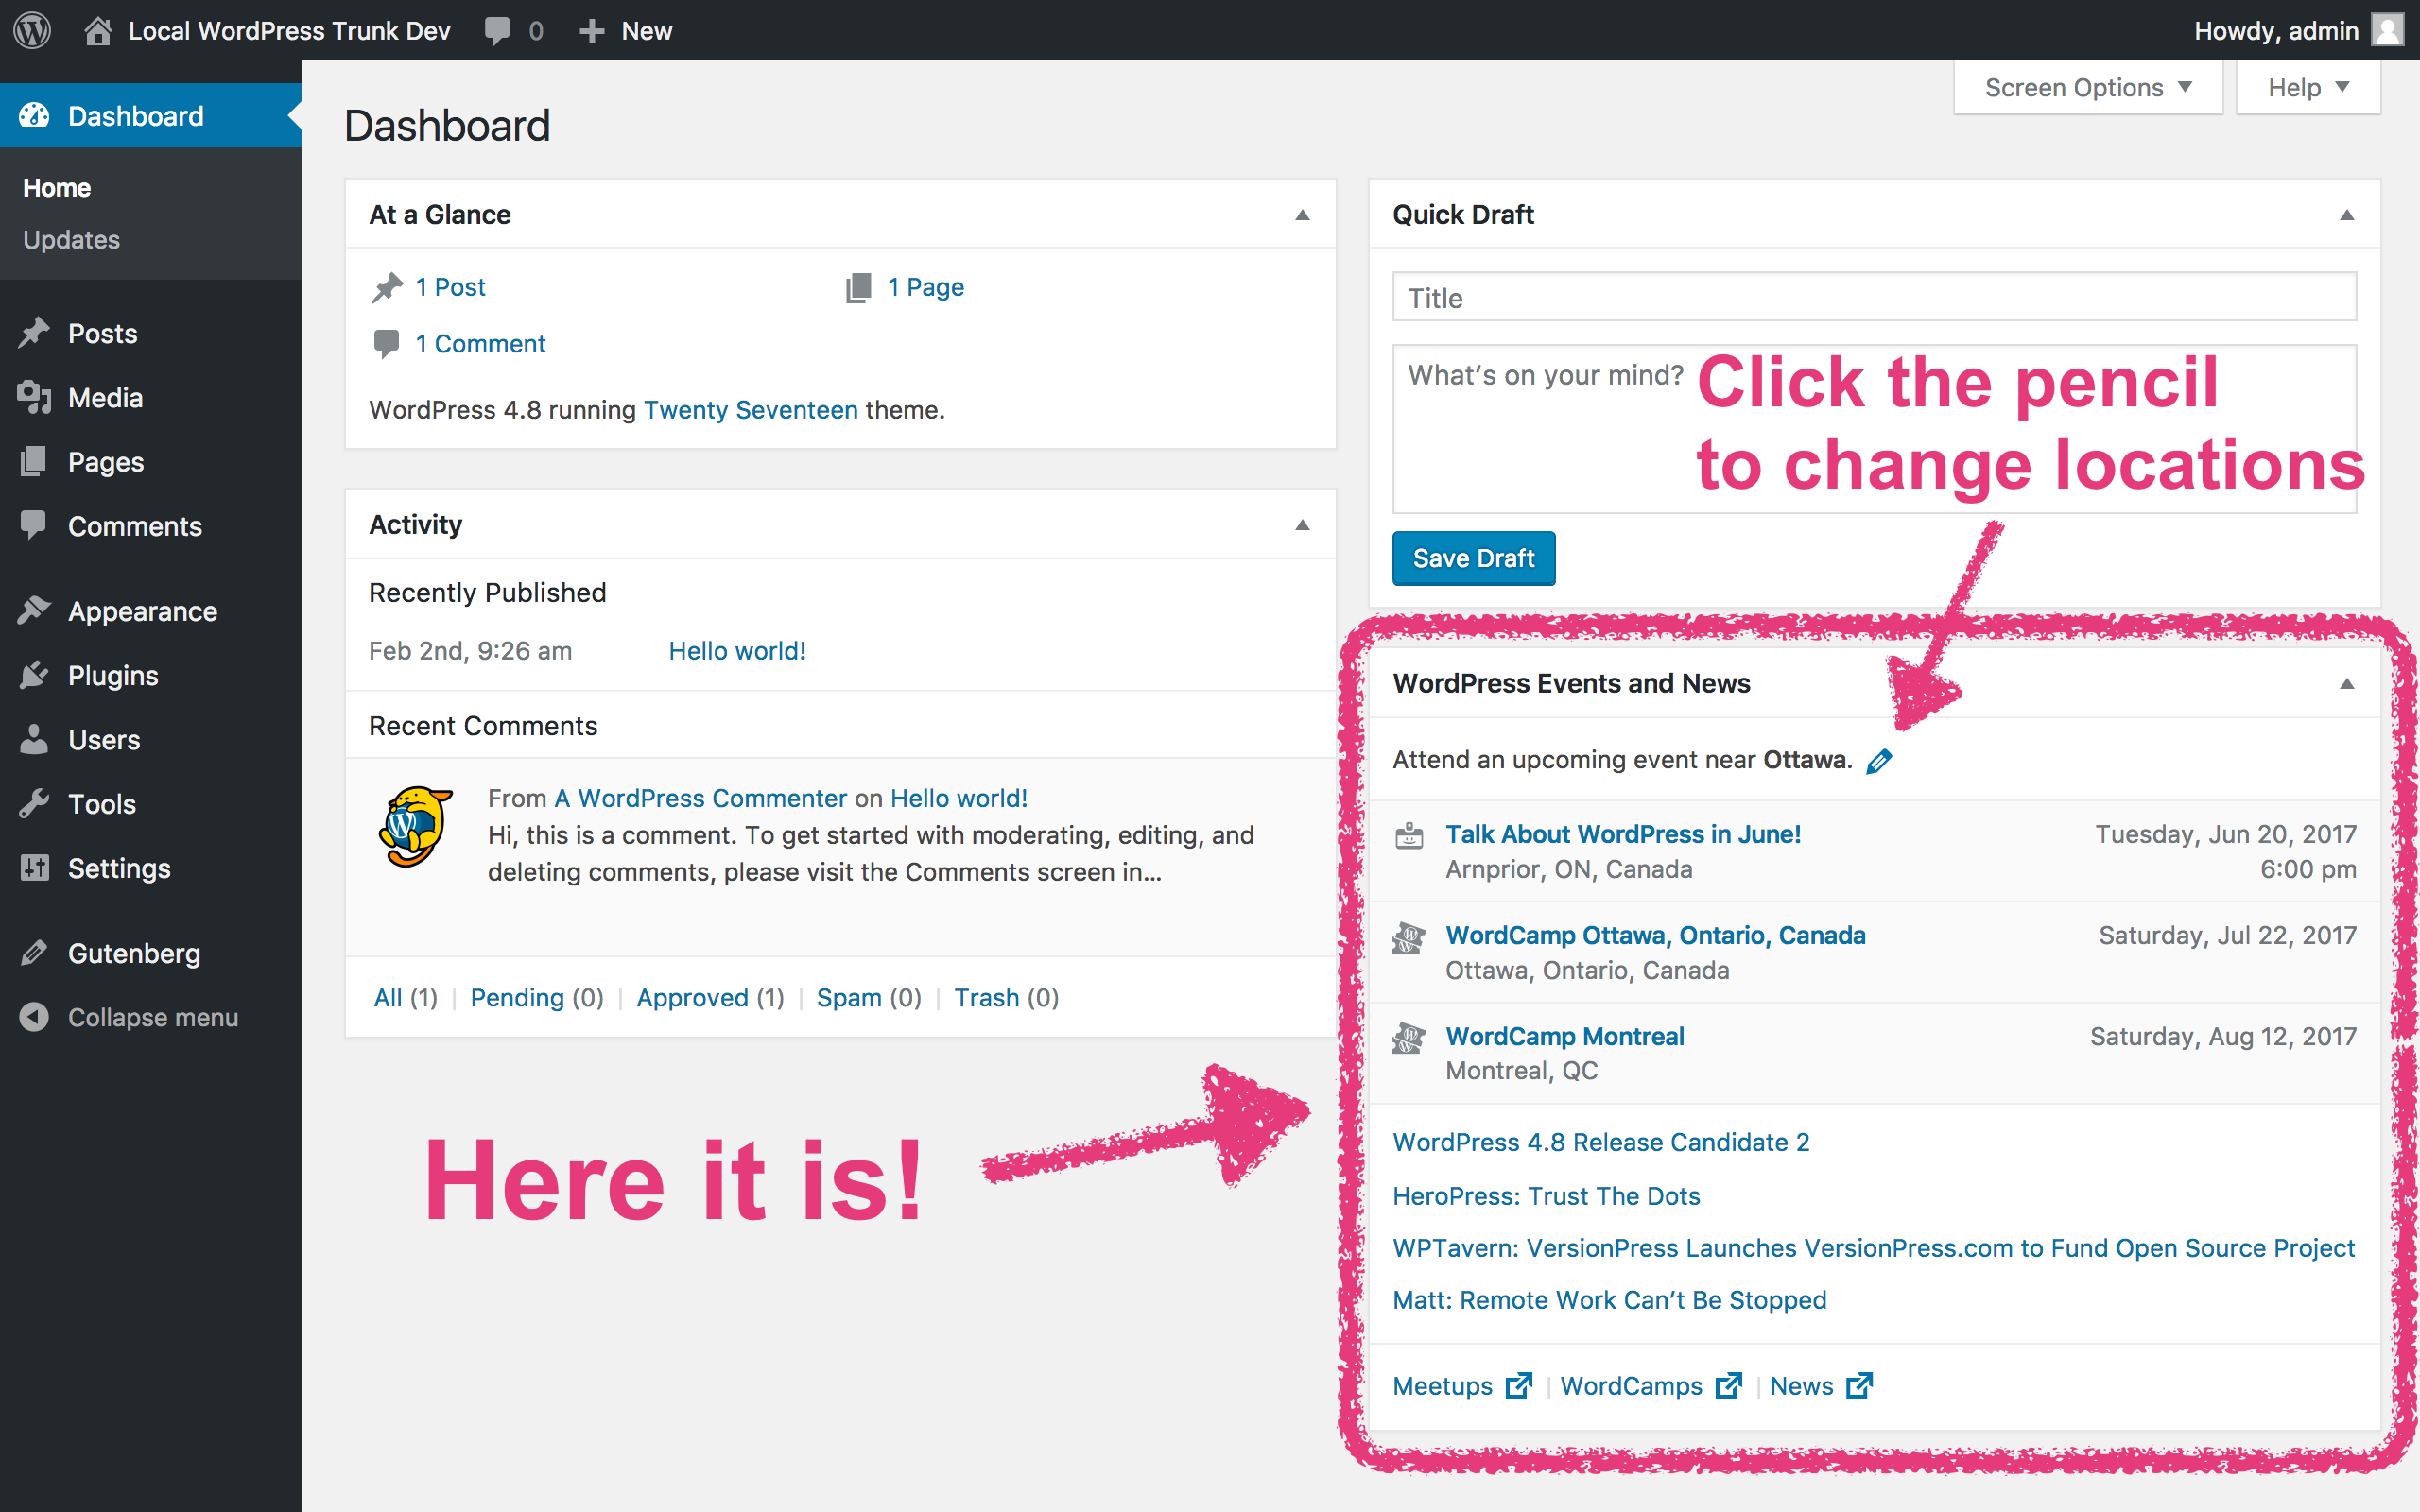 Image shows the new Events and News dashboard widget and its placement on the WordPress dashboard, including an arrow pointing to the pencil icon that allows users to edit the location.